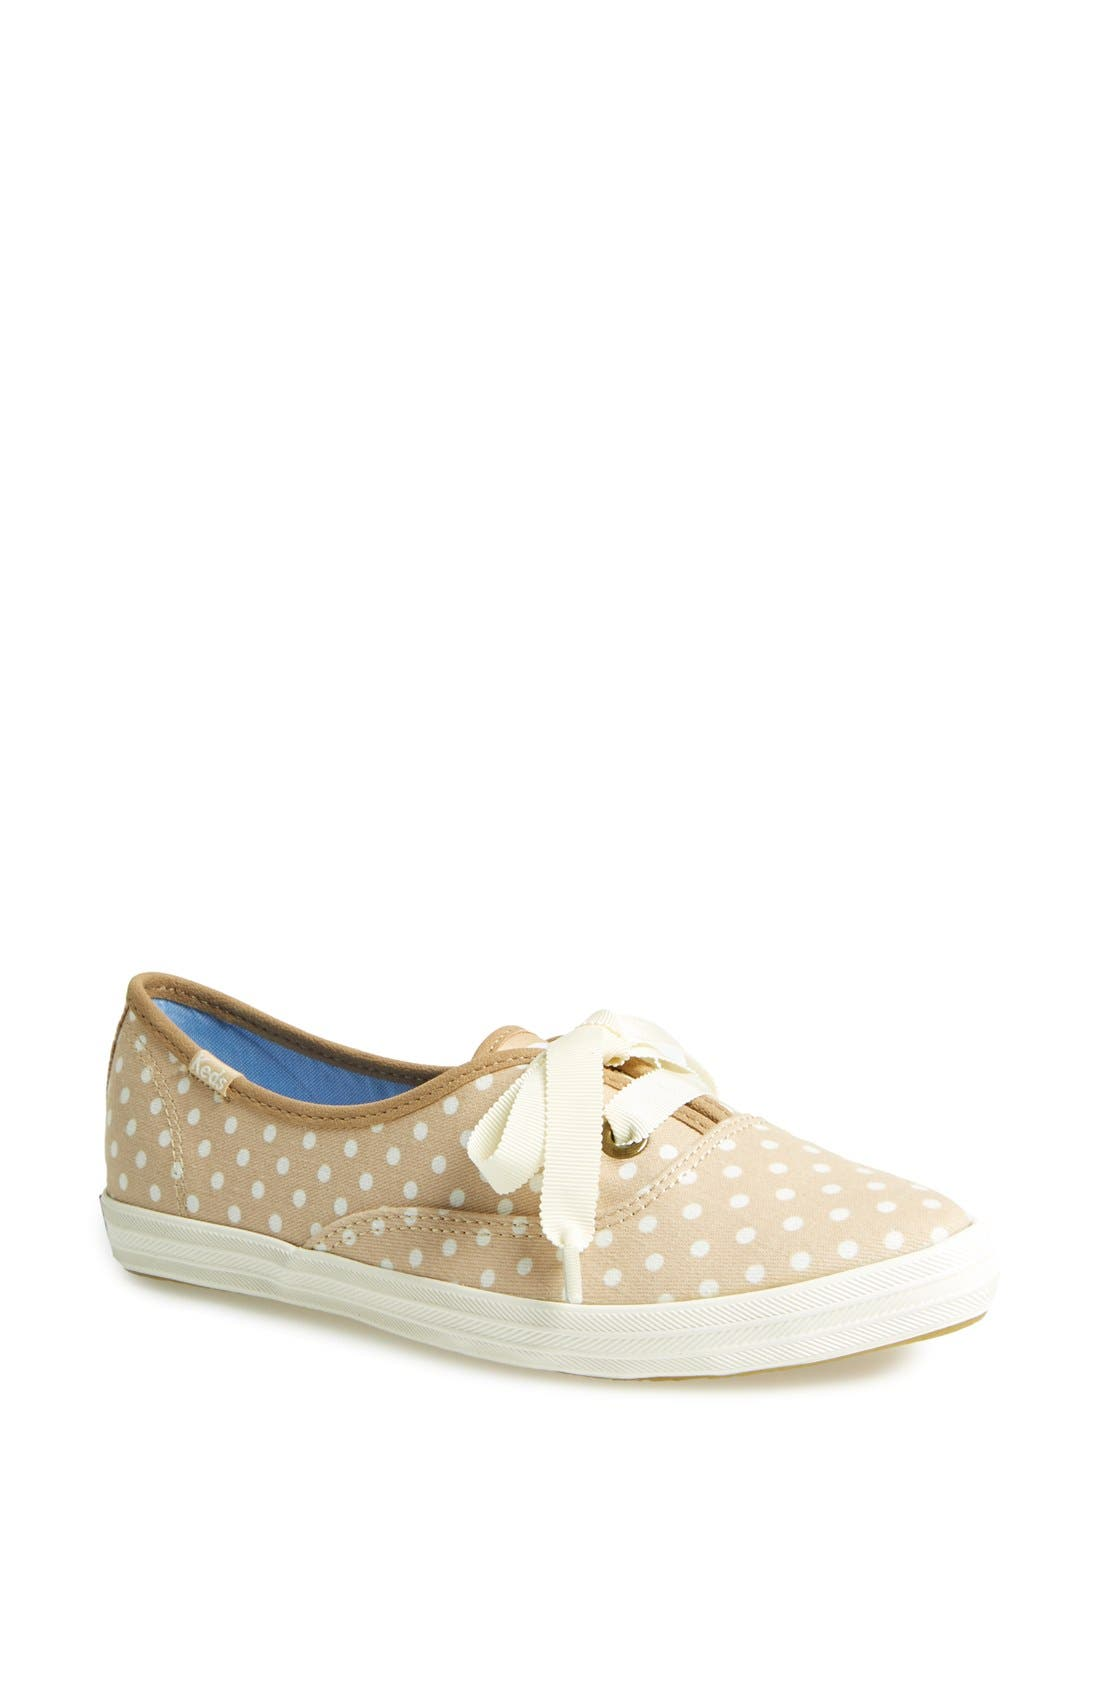 Main Image - Keds® 'Pointer' Polka Dot Canvas Sneaker (Women)